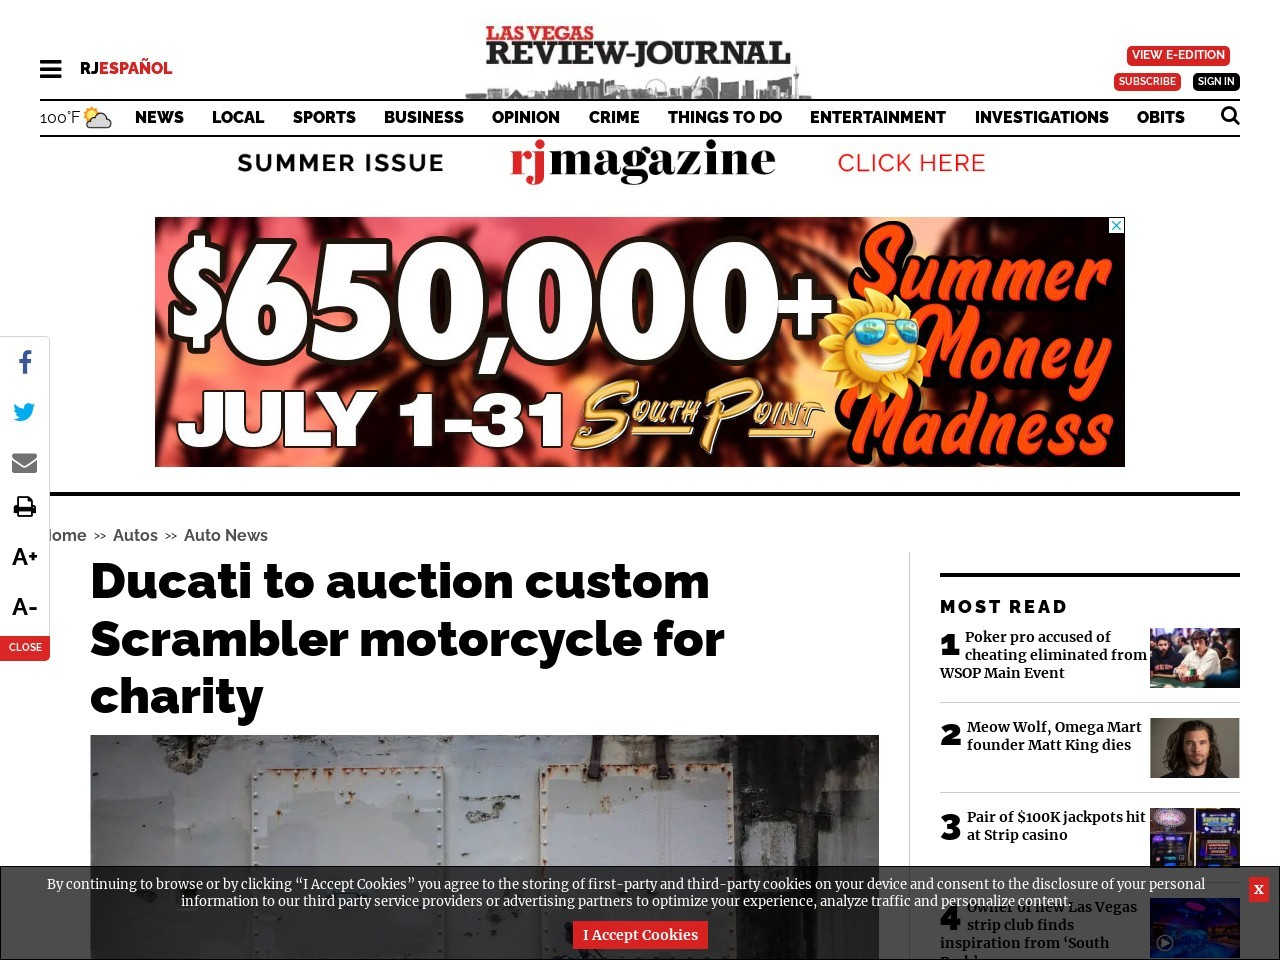 Ducati to auction custom Scrambler motorcycle for charity